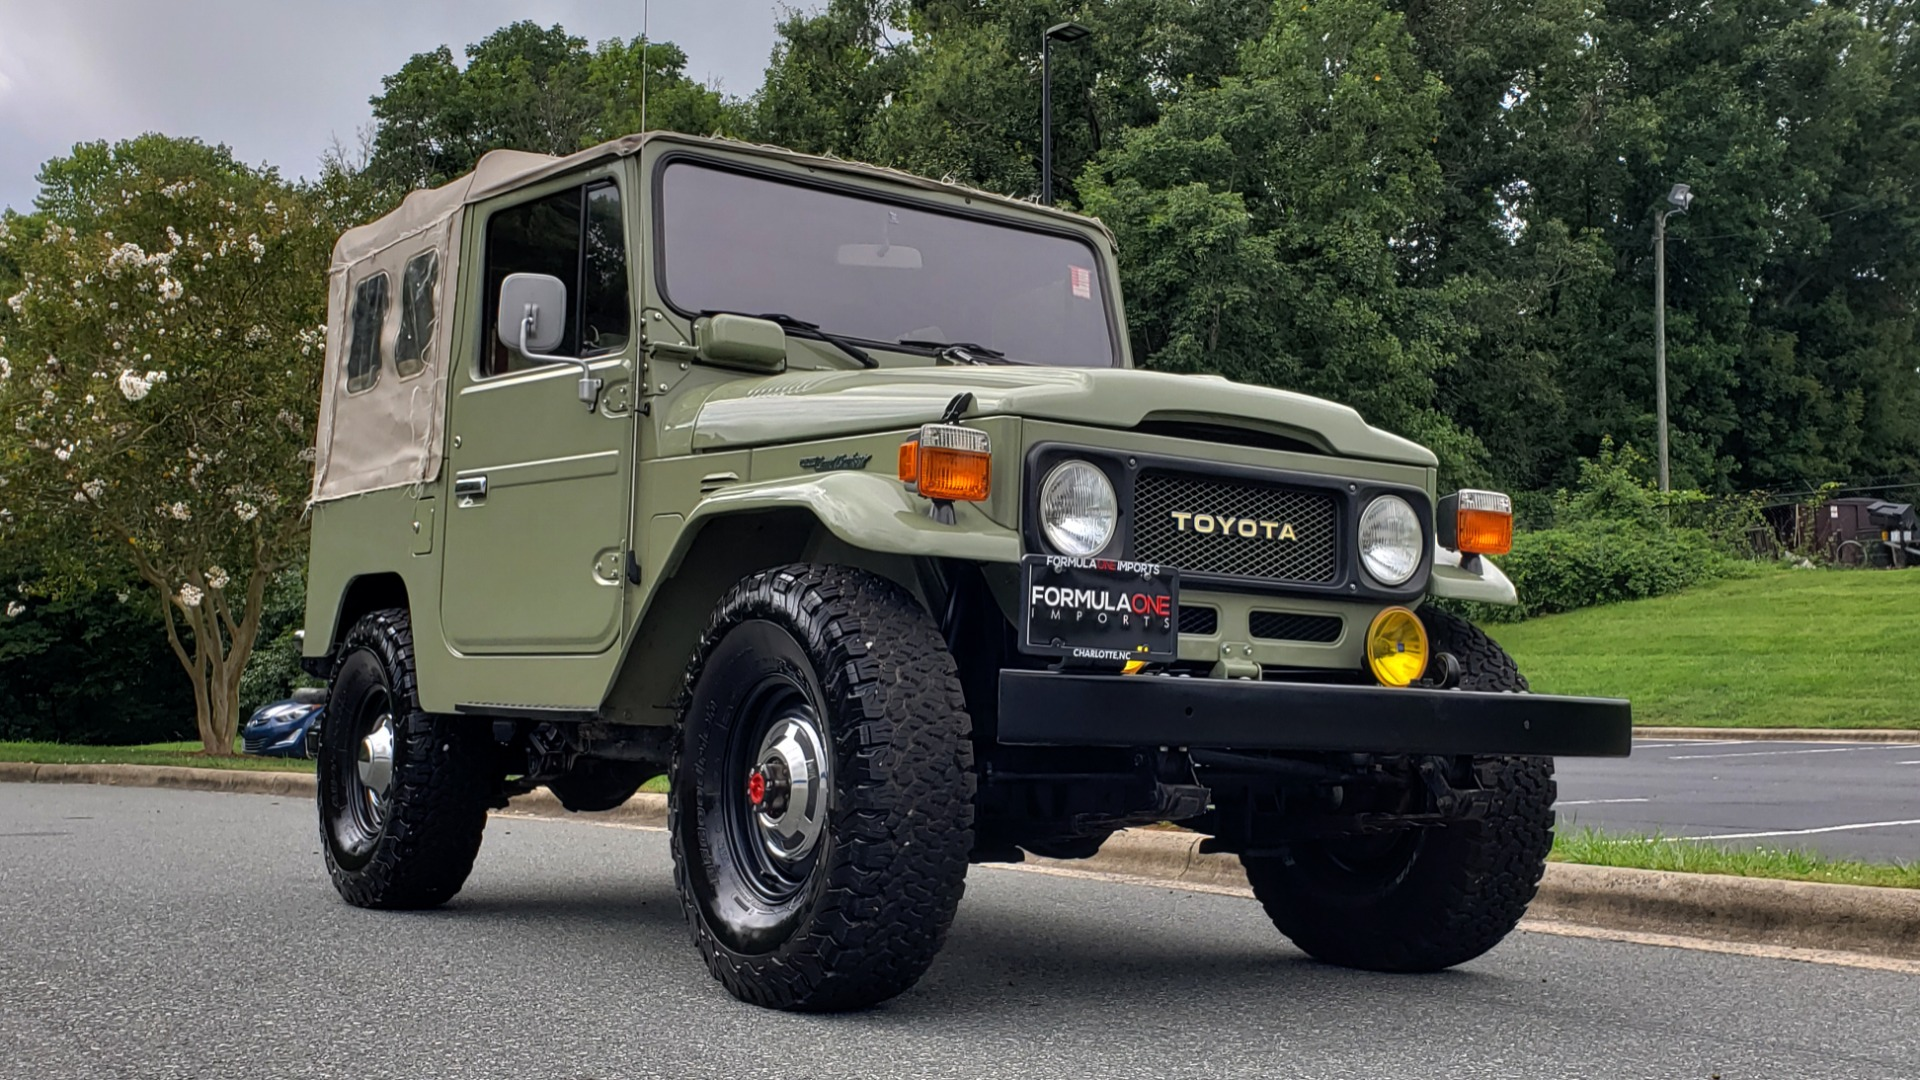 Used 1981 Toyota FJ40 LAND CRUISER FULL RESTORATION - 6500KM SINCE COMPLETE for sale $43,995 at Formula Imports in Charlotte NC 28227 9